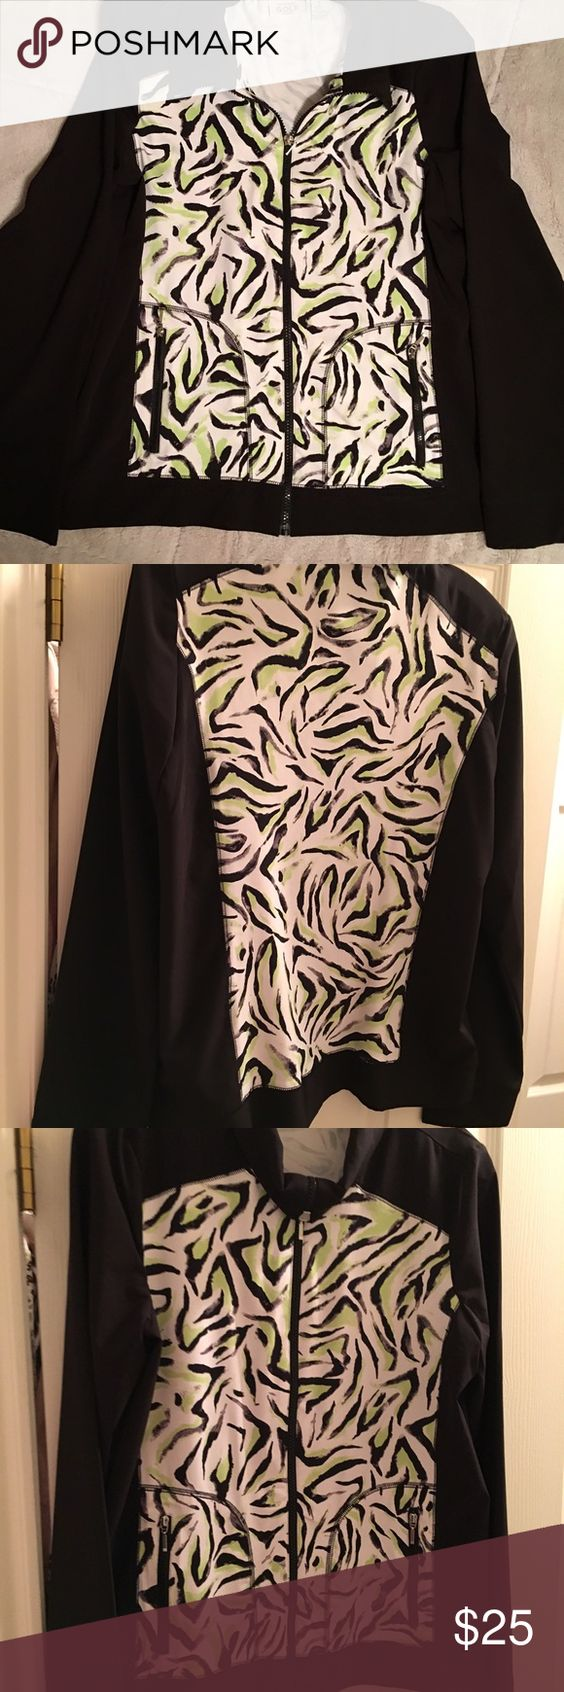 Chico golf jacket Great Chico golf jacket. Light weight but warm like wind breaker. Can be worn with jeans, golf skirt or pants. Great fabric. Does not wrinkle. Chico's Jackets & Coats Utility Jackets